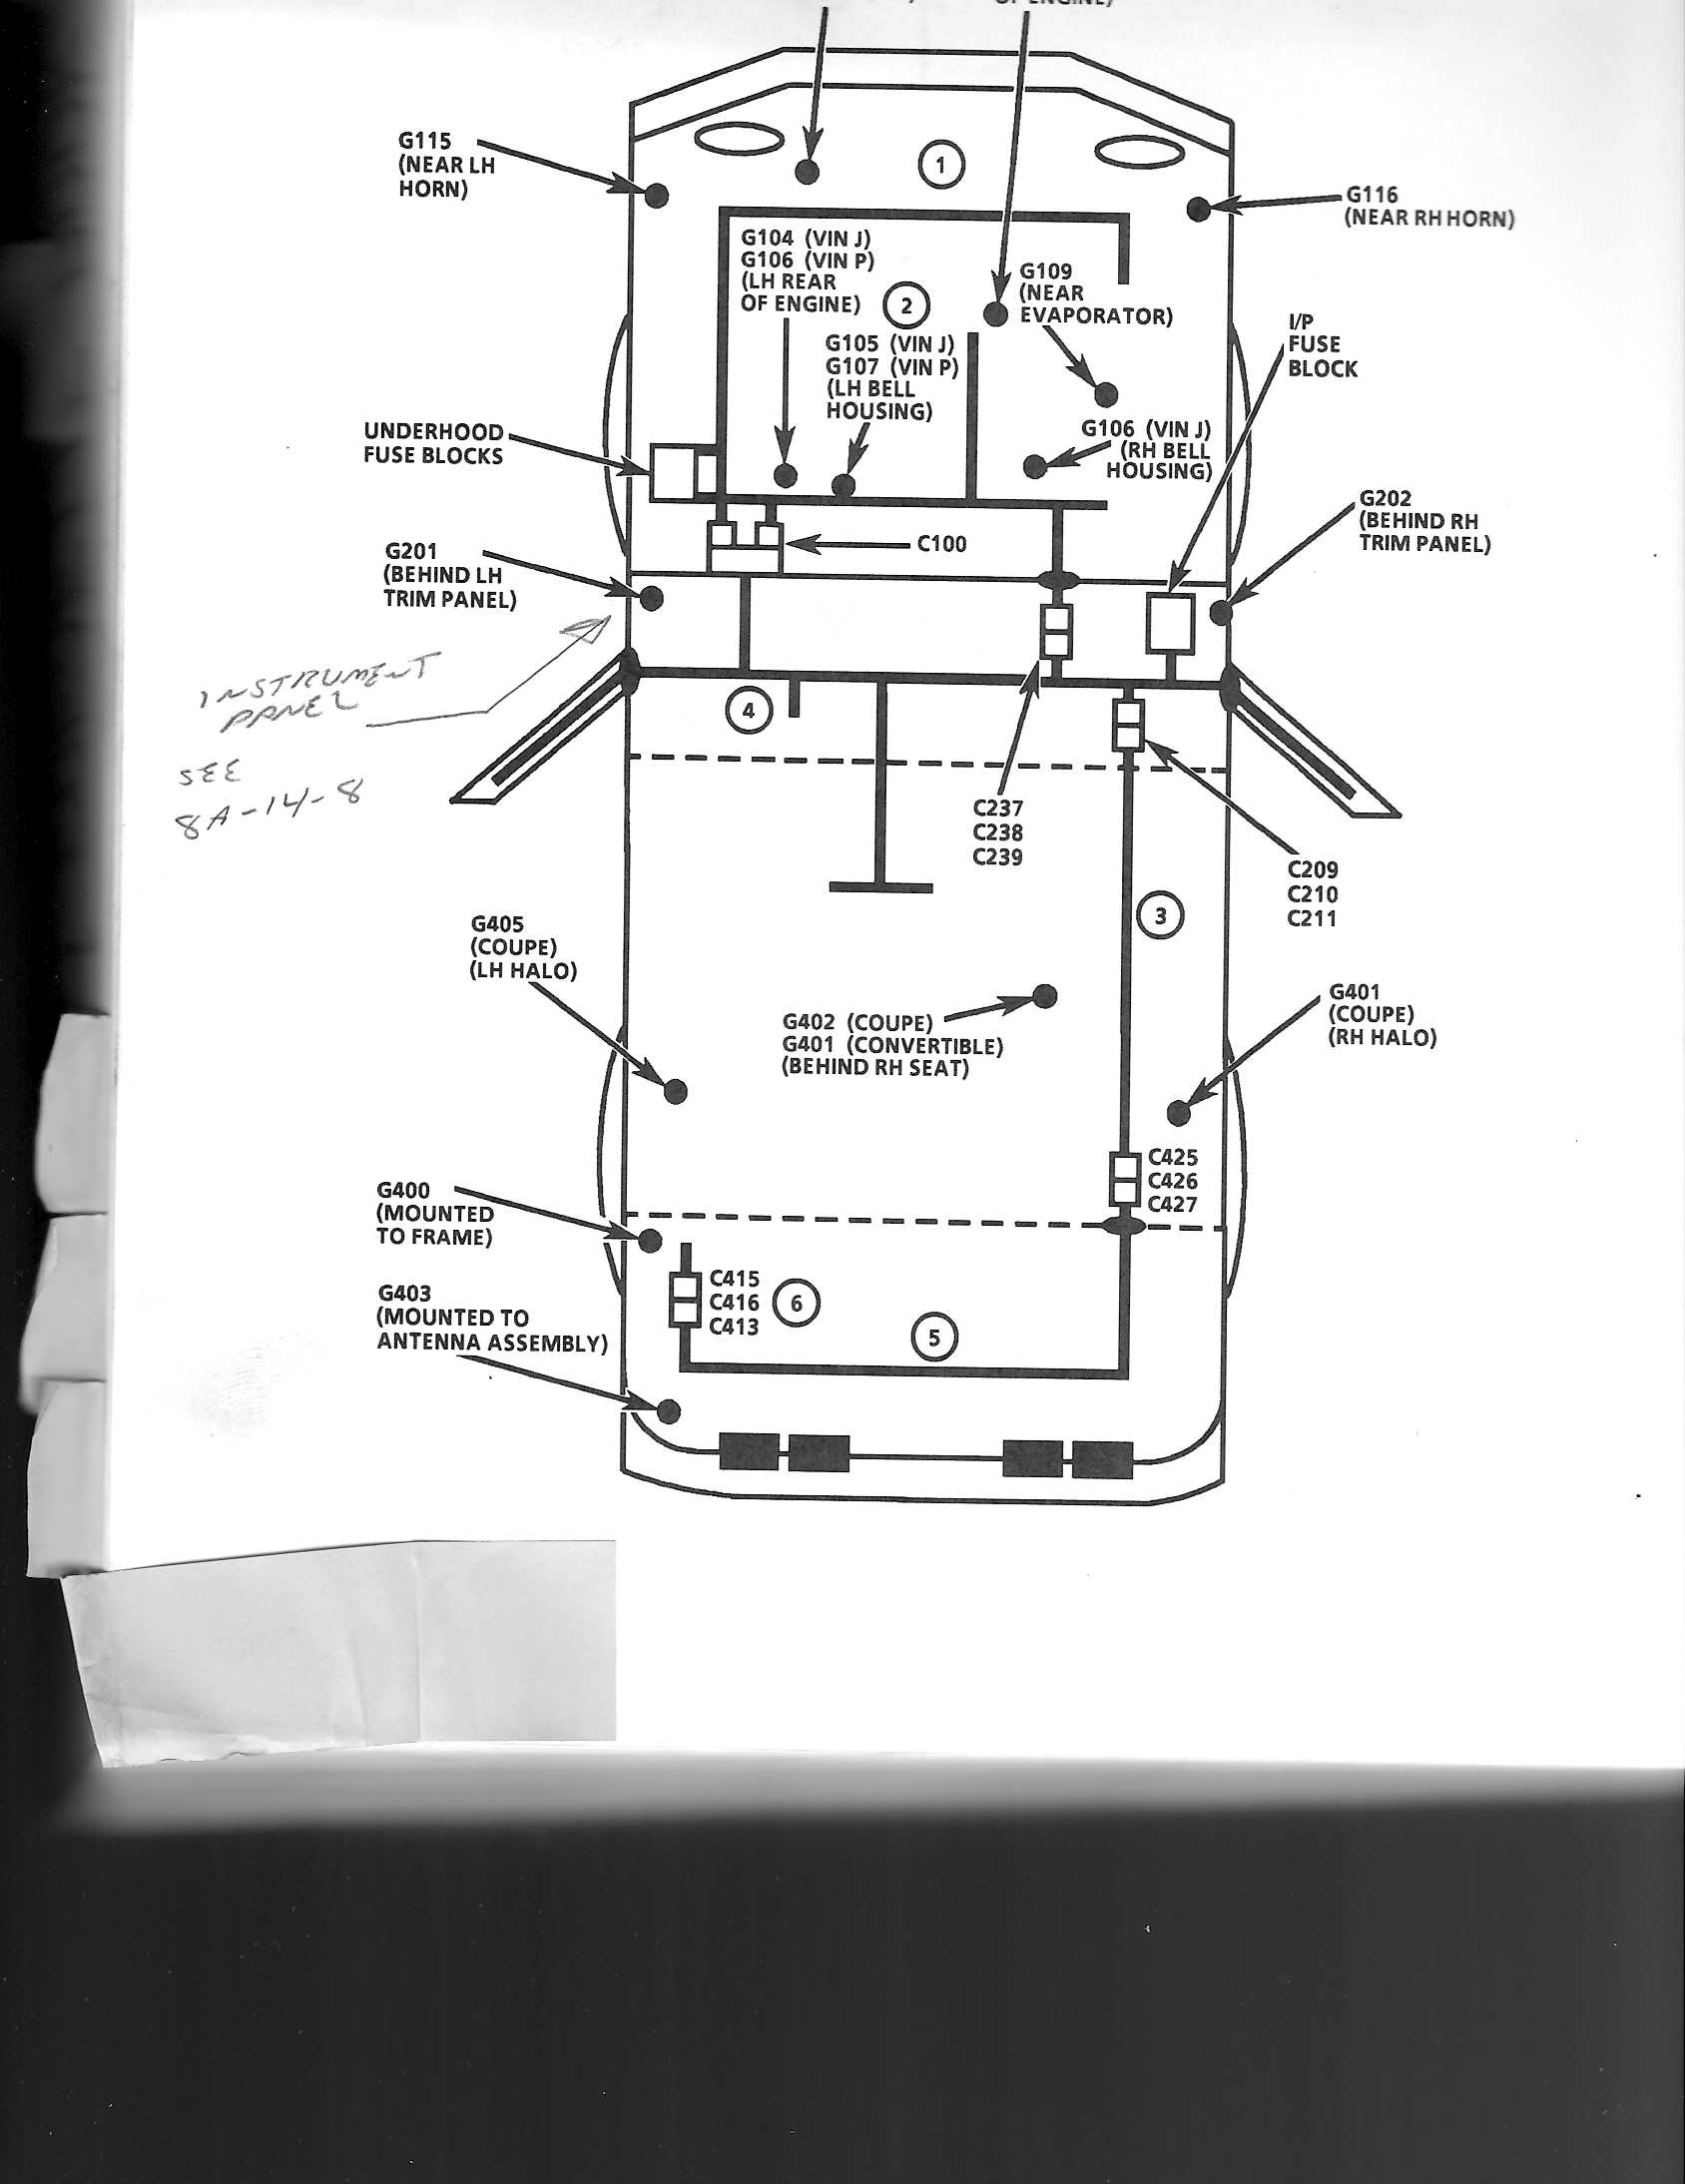 C5 Corvette Radio Wiring Diagram On Wiring Diagram For 1999 Corvette